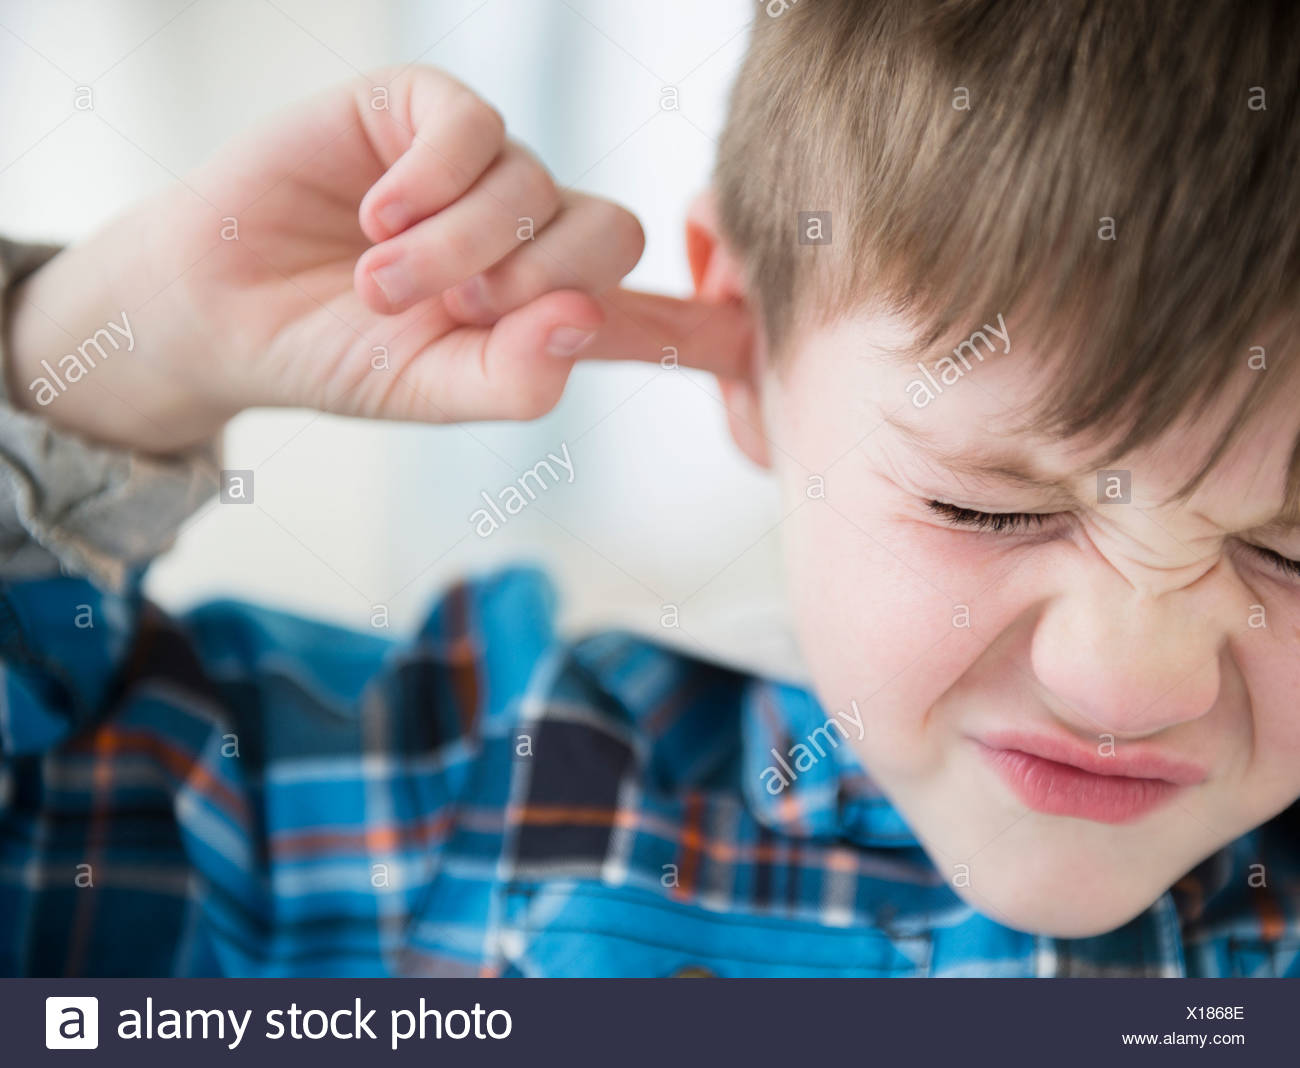 Portrait of boy (4-5) sticking fingers in his ears Stock Photo